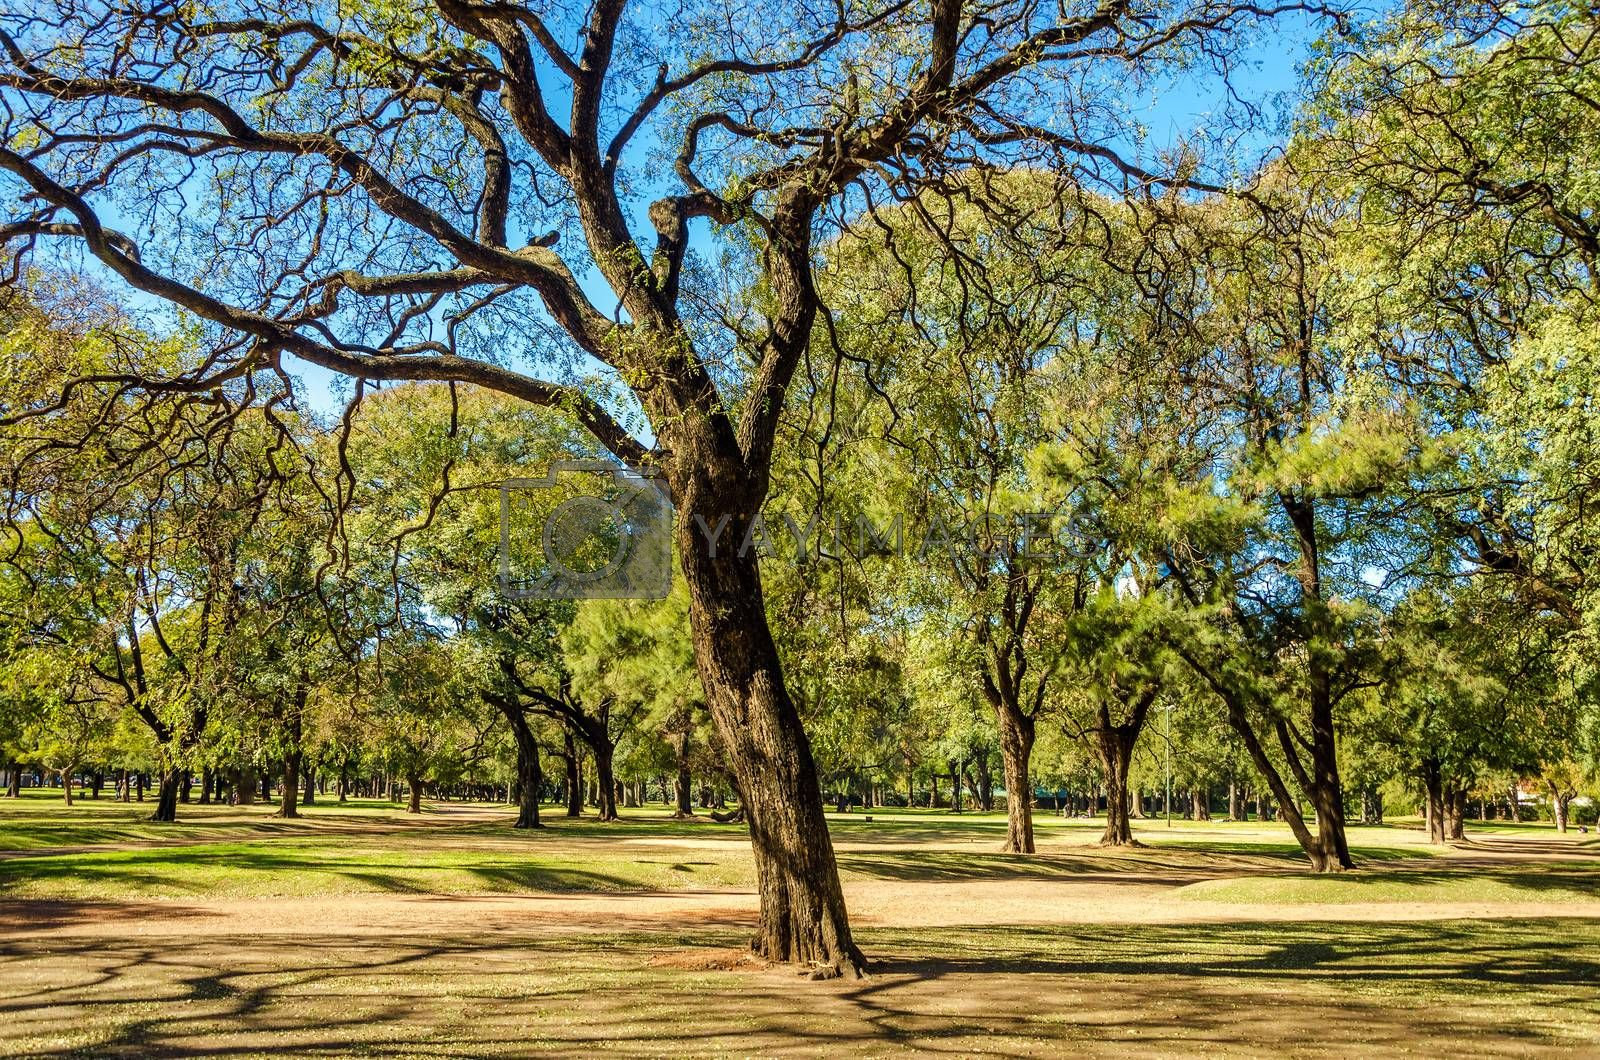 A park full of trees in Buenos Aires, Argentina